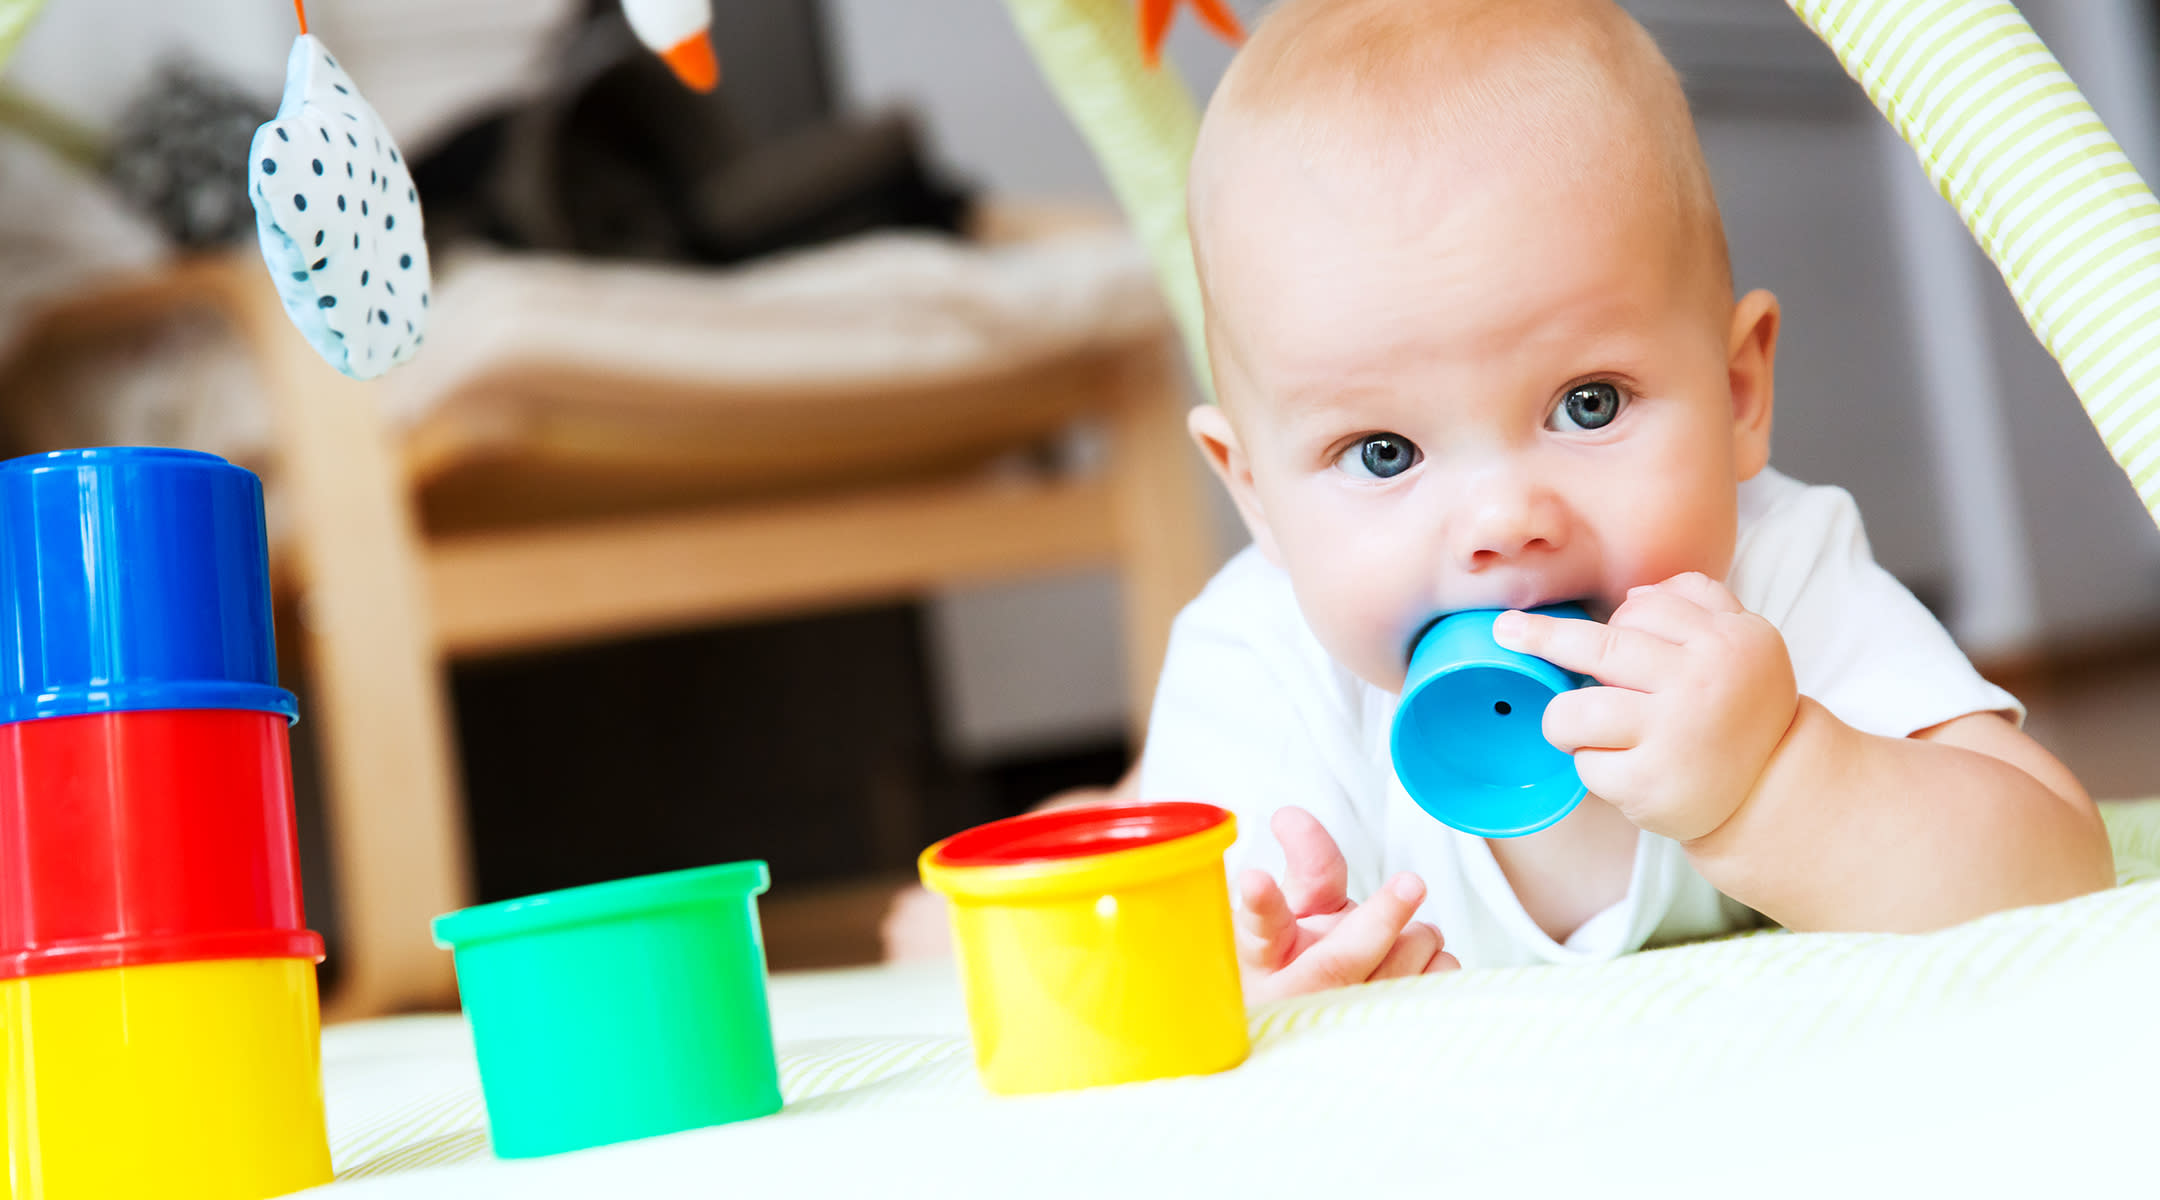 baby chewing on colorful toys